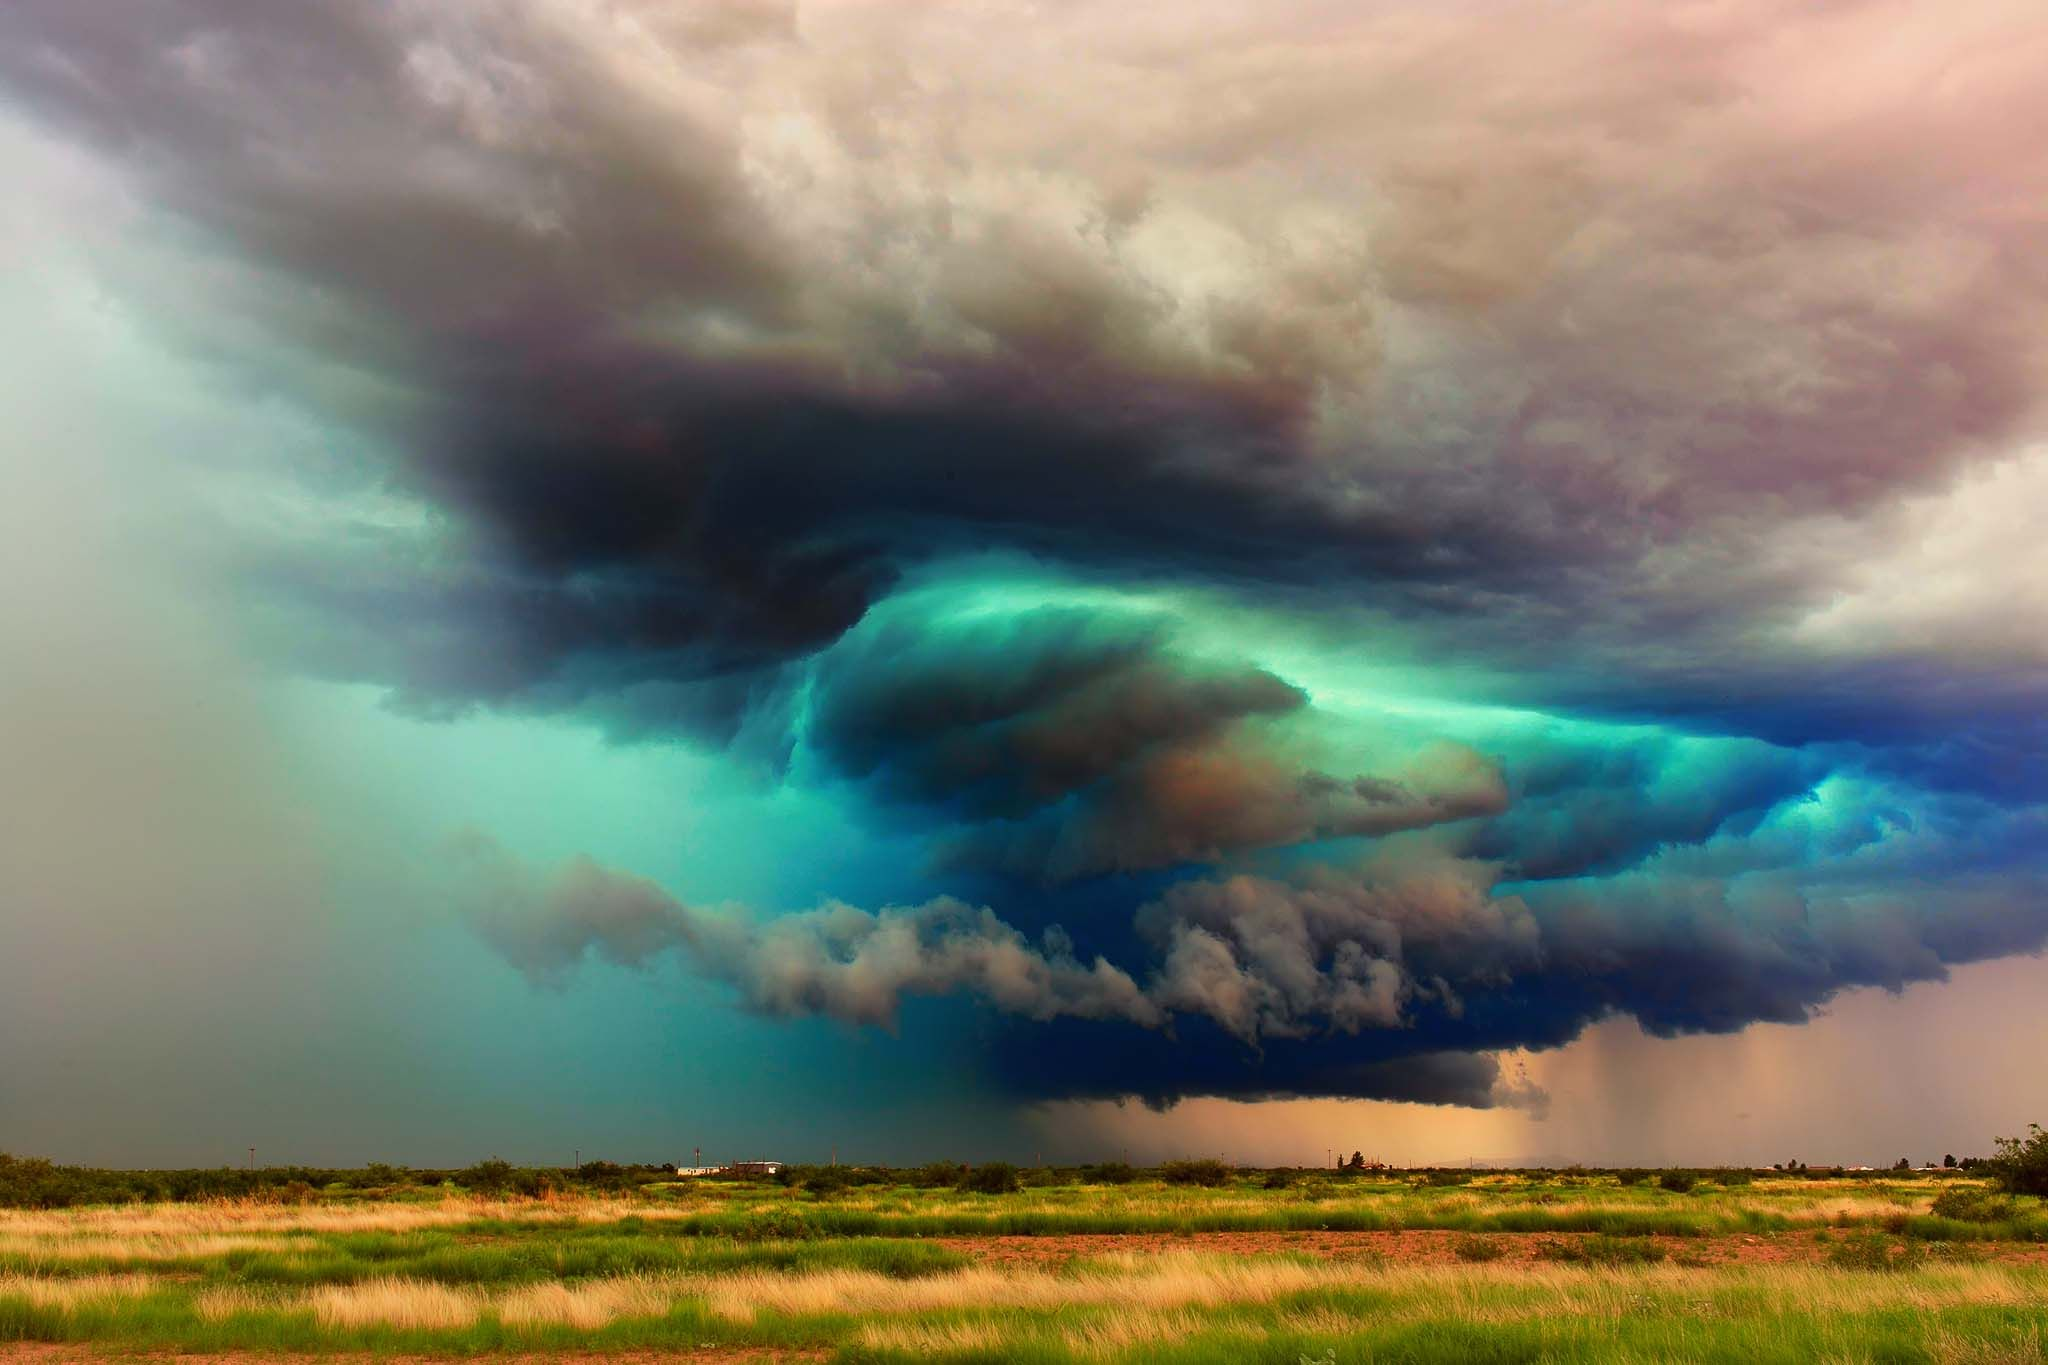 Storm Clouds Wallpapers: Awesome-storm-clouds-hd-wallpaper.jpg (2048×1365)